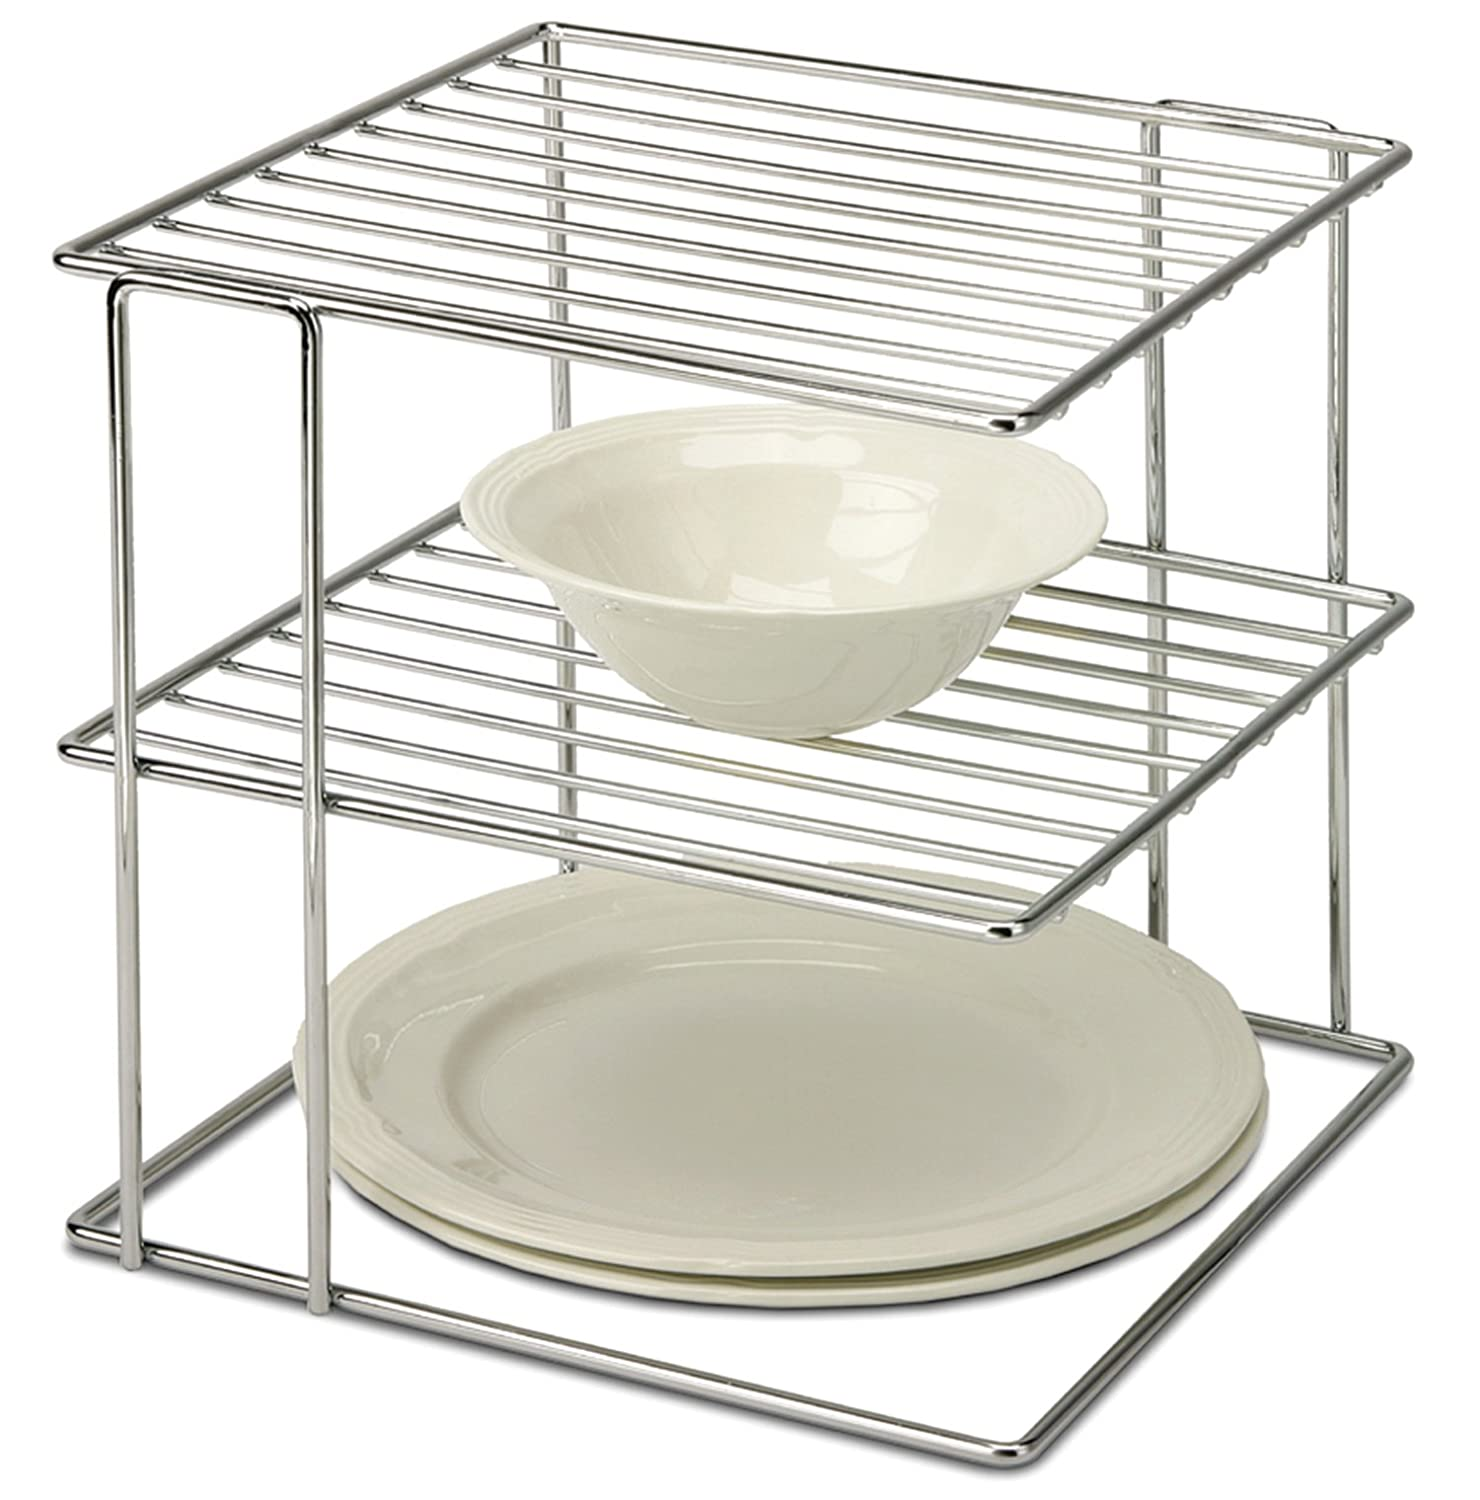 Kitchen Organizer Racks Amazon organize it all chrome kitchen corner shelf organizer amazon organize it all chrome kitchen corner shelf organizer cabinet organizers workwithnaturefo